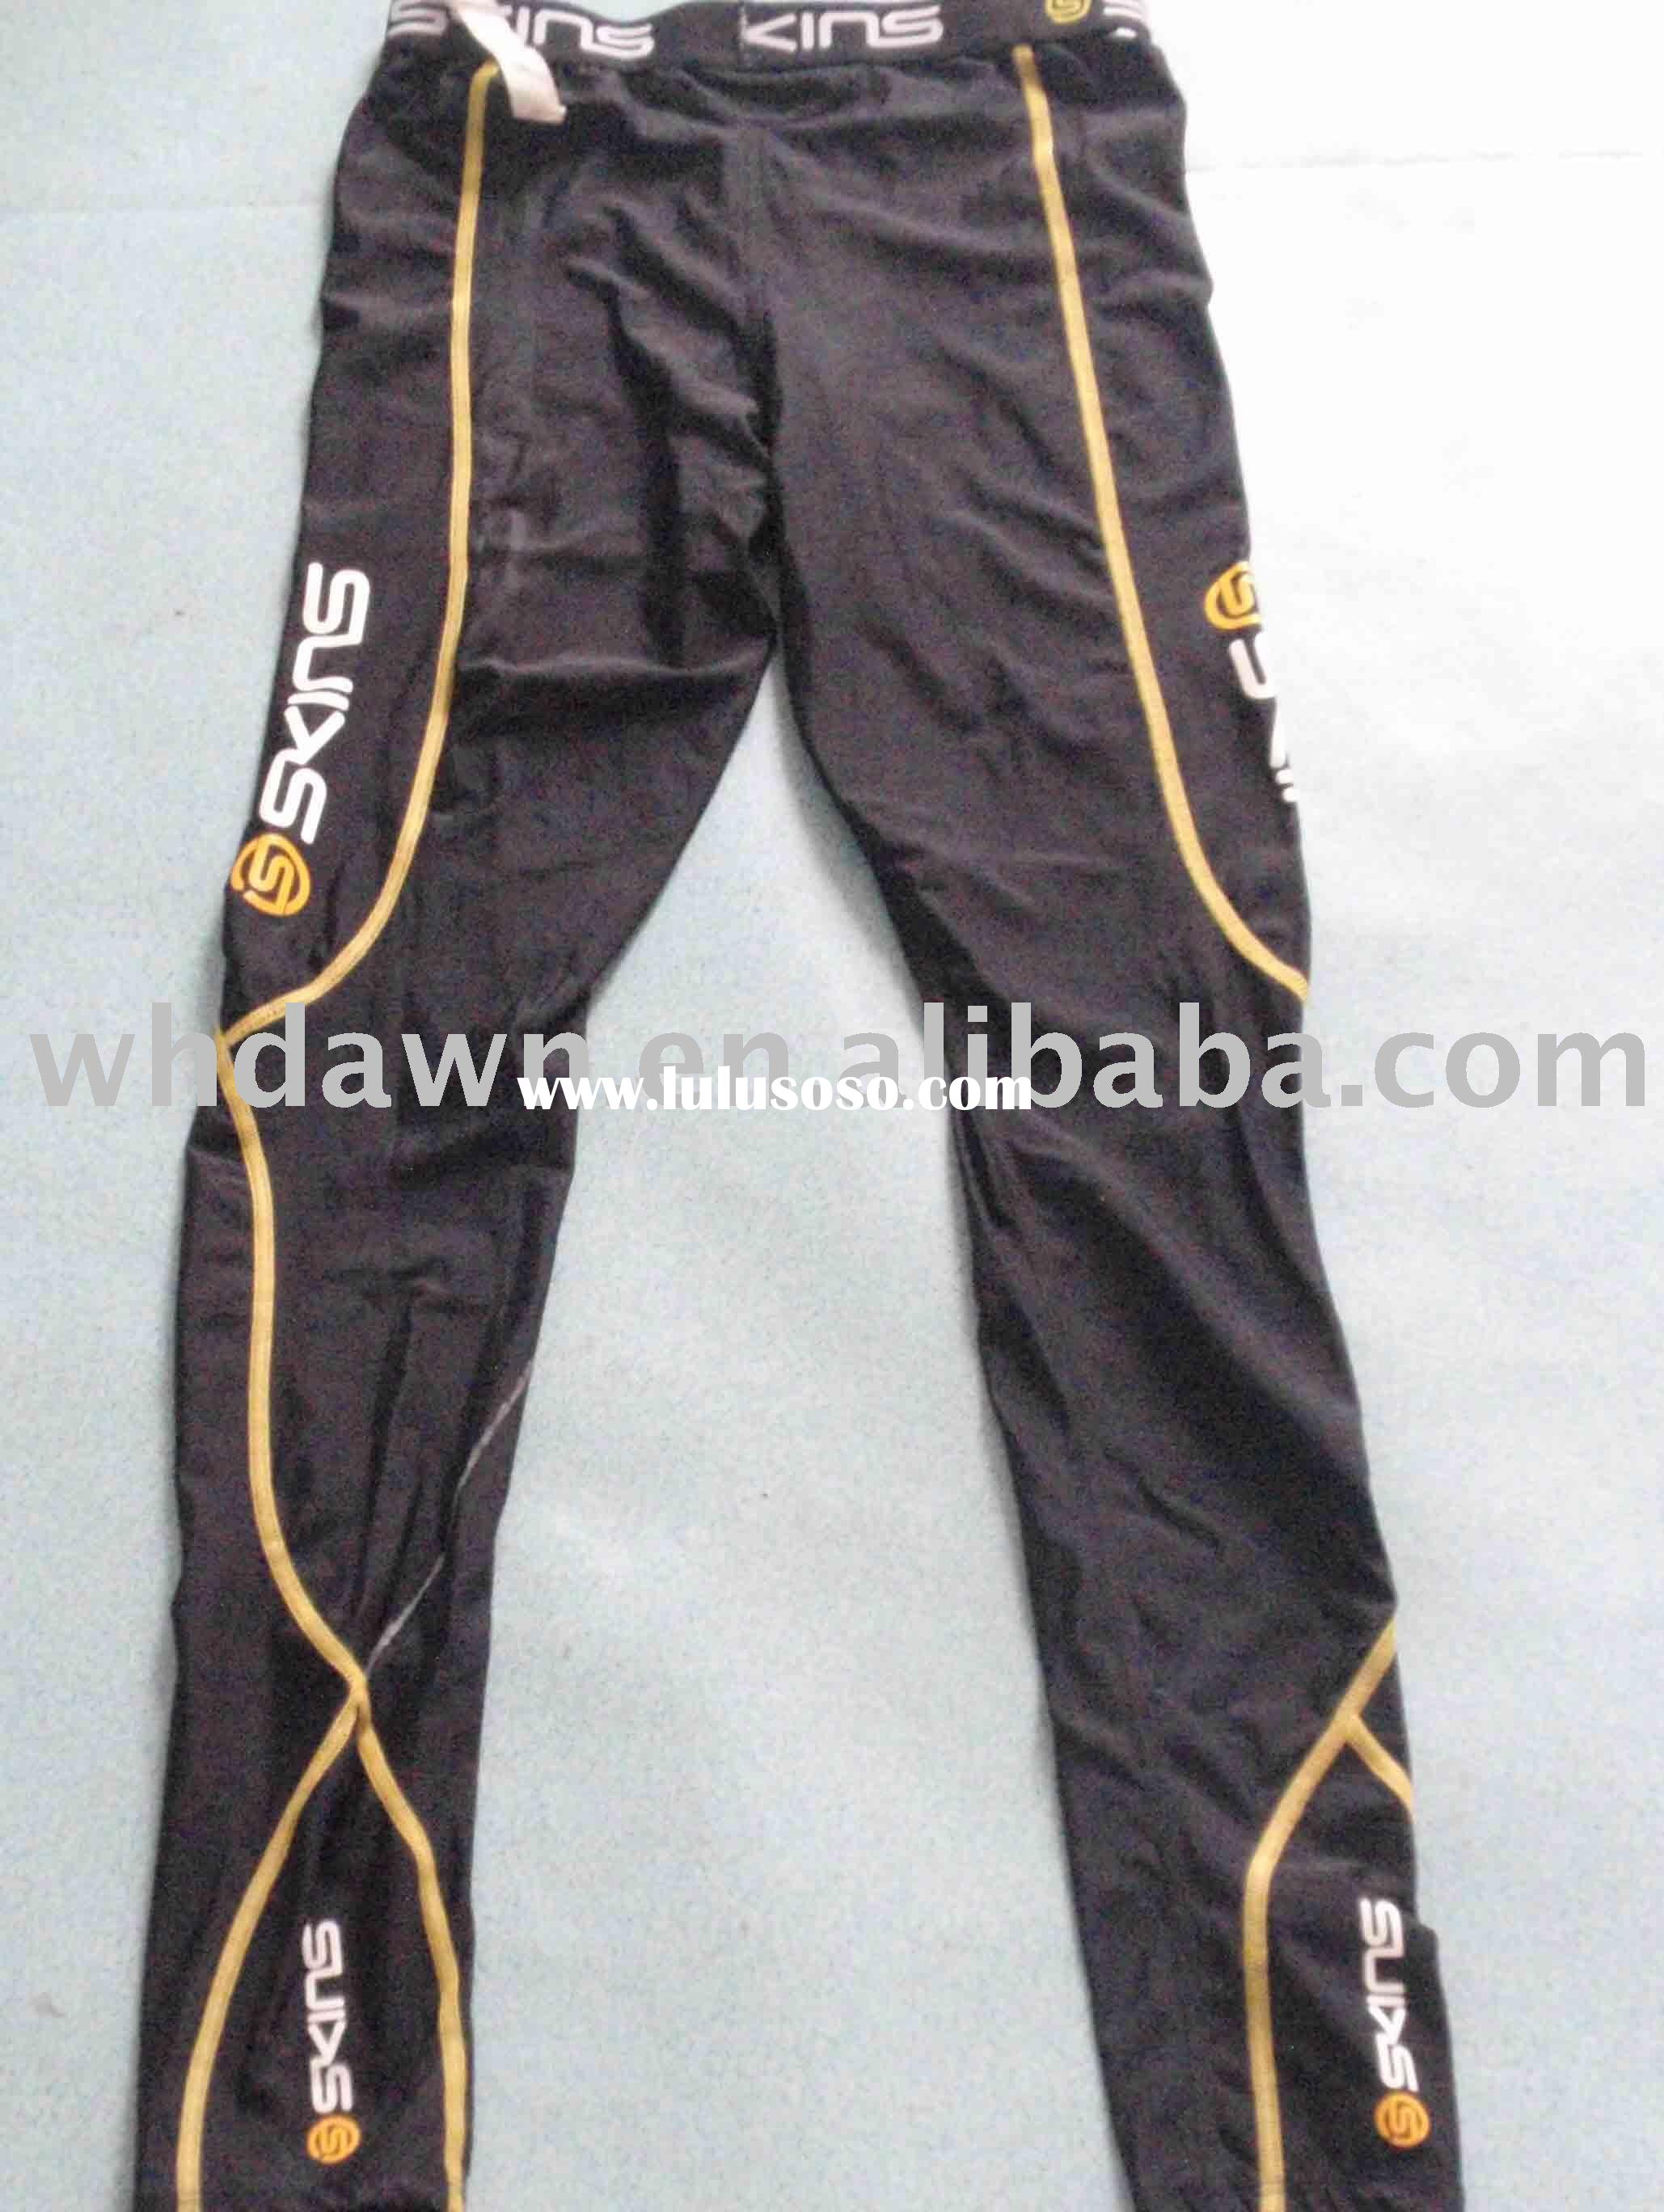 Compression shorts, compression wear, compression tights, running wear, compression clothing, perfor